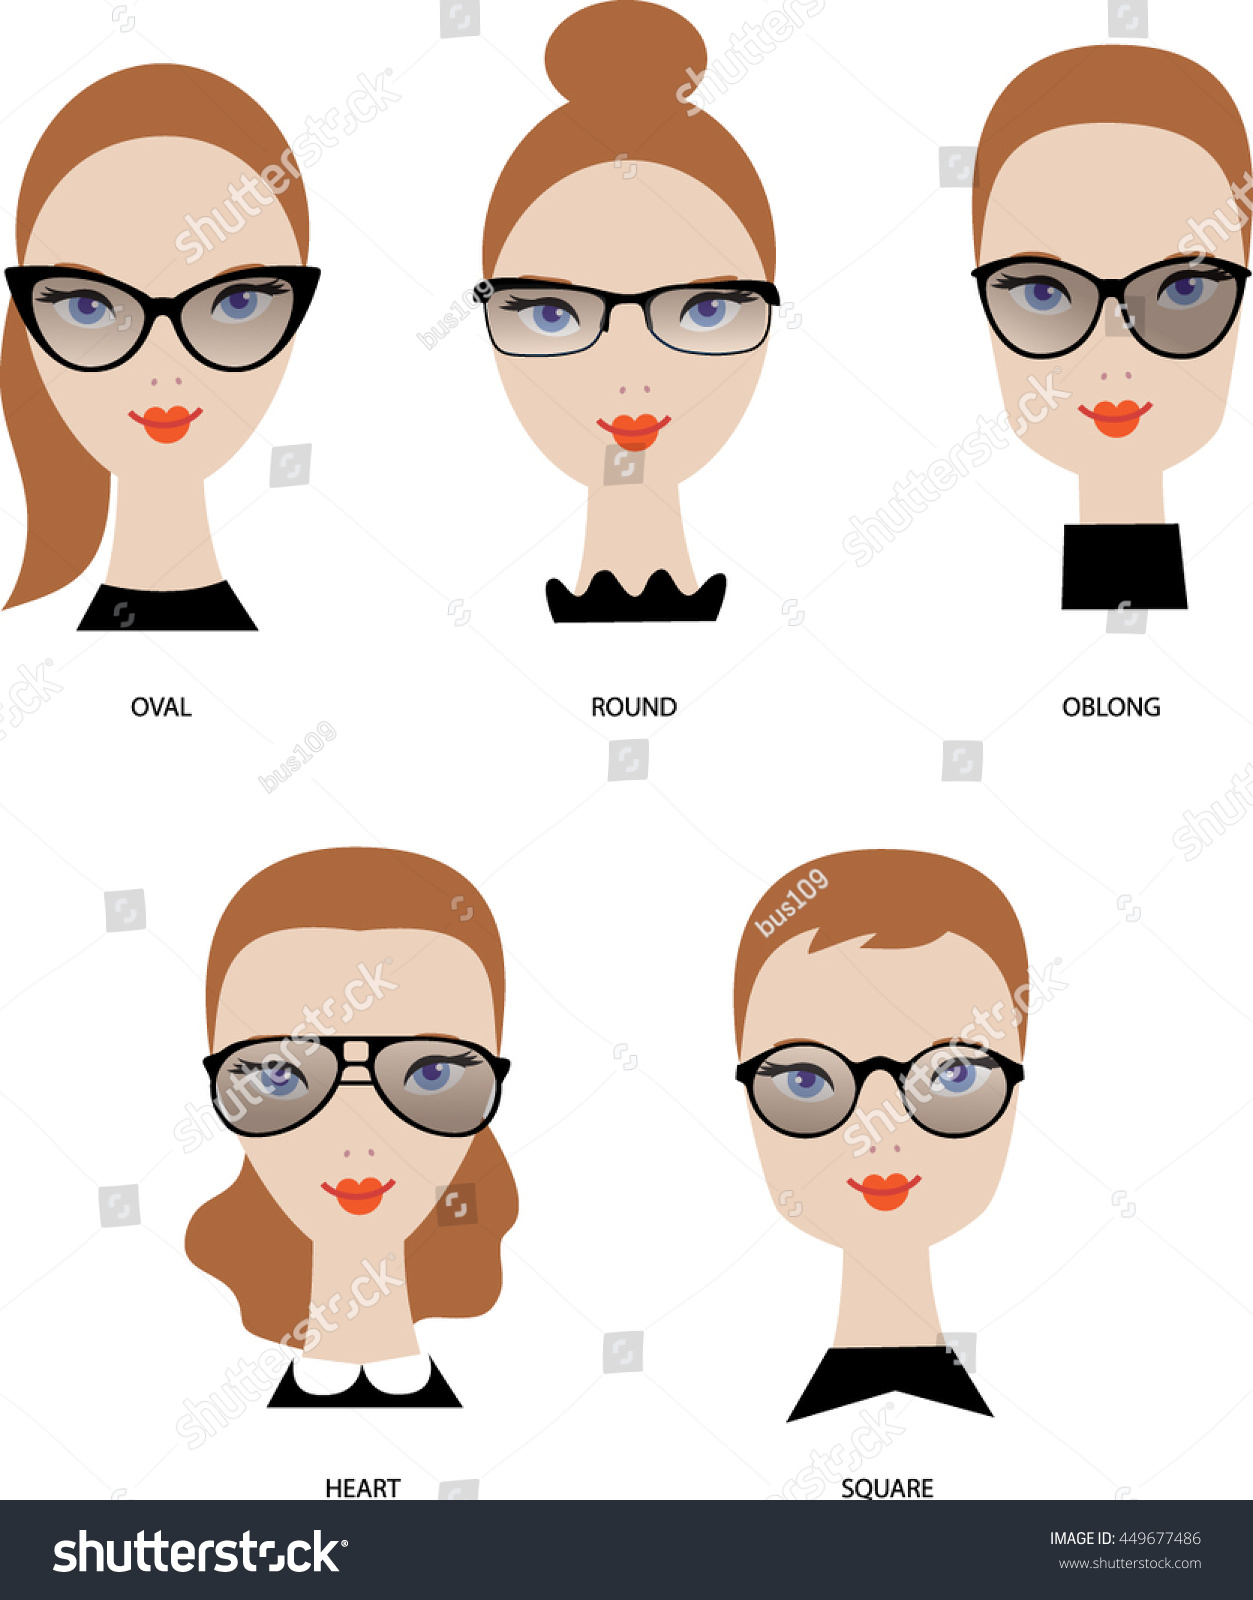 29cff28ccb Female Face Shapes Woman Glasses Types Stock Vector (Royalty Free ...